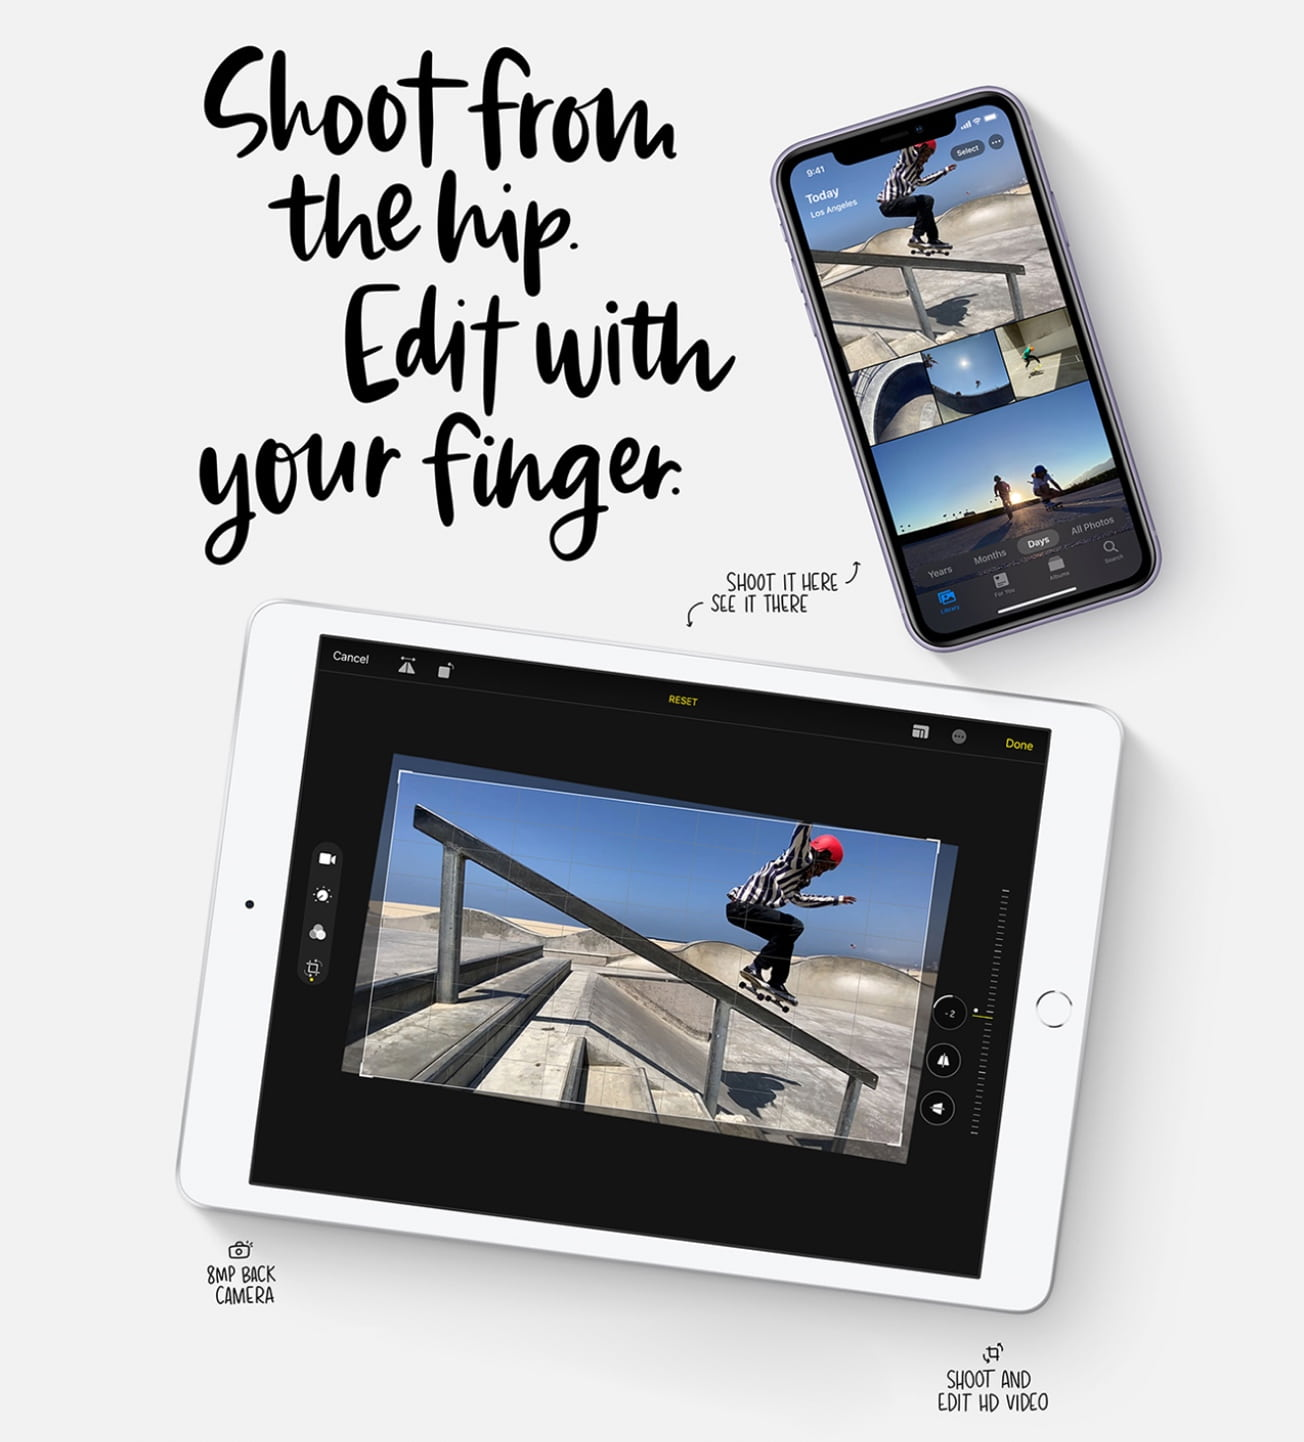 Shoot photos and videos on your iphone, view and edit them on your ipad